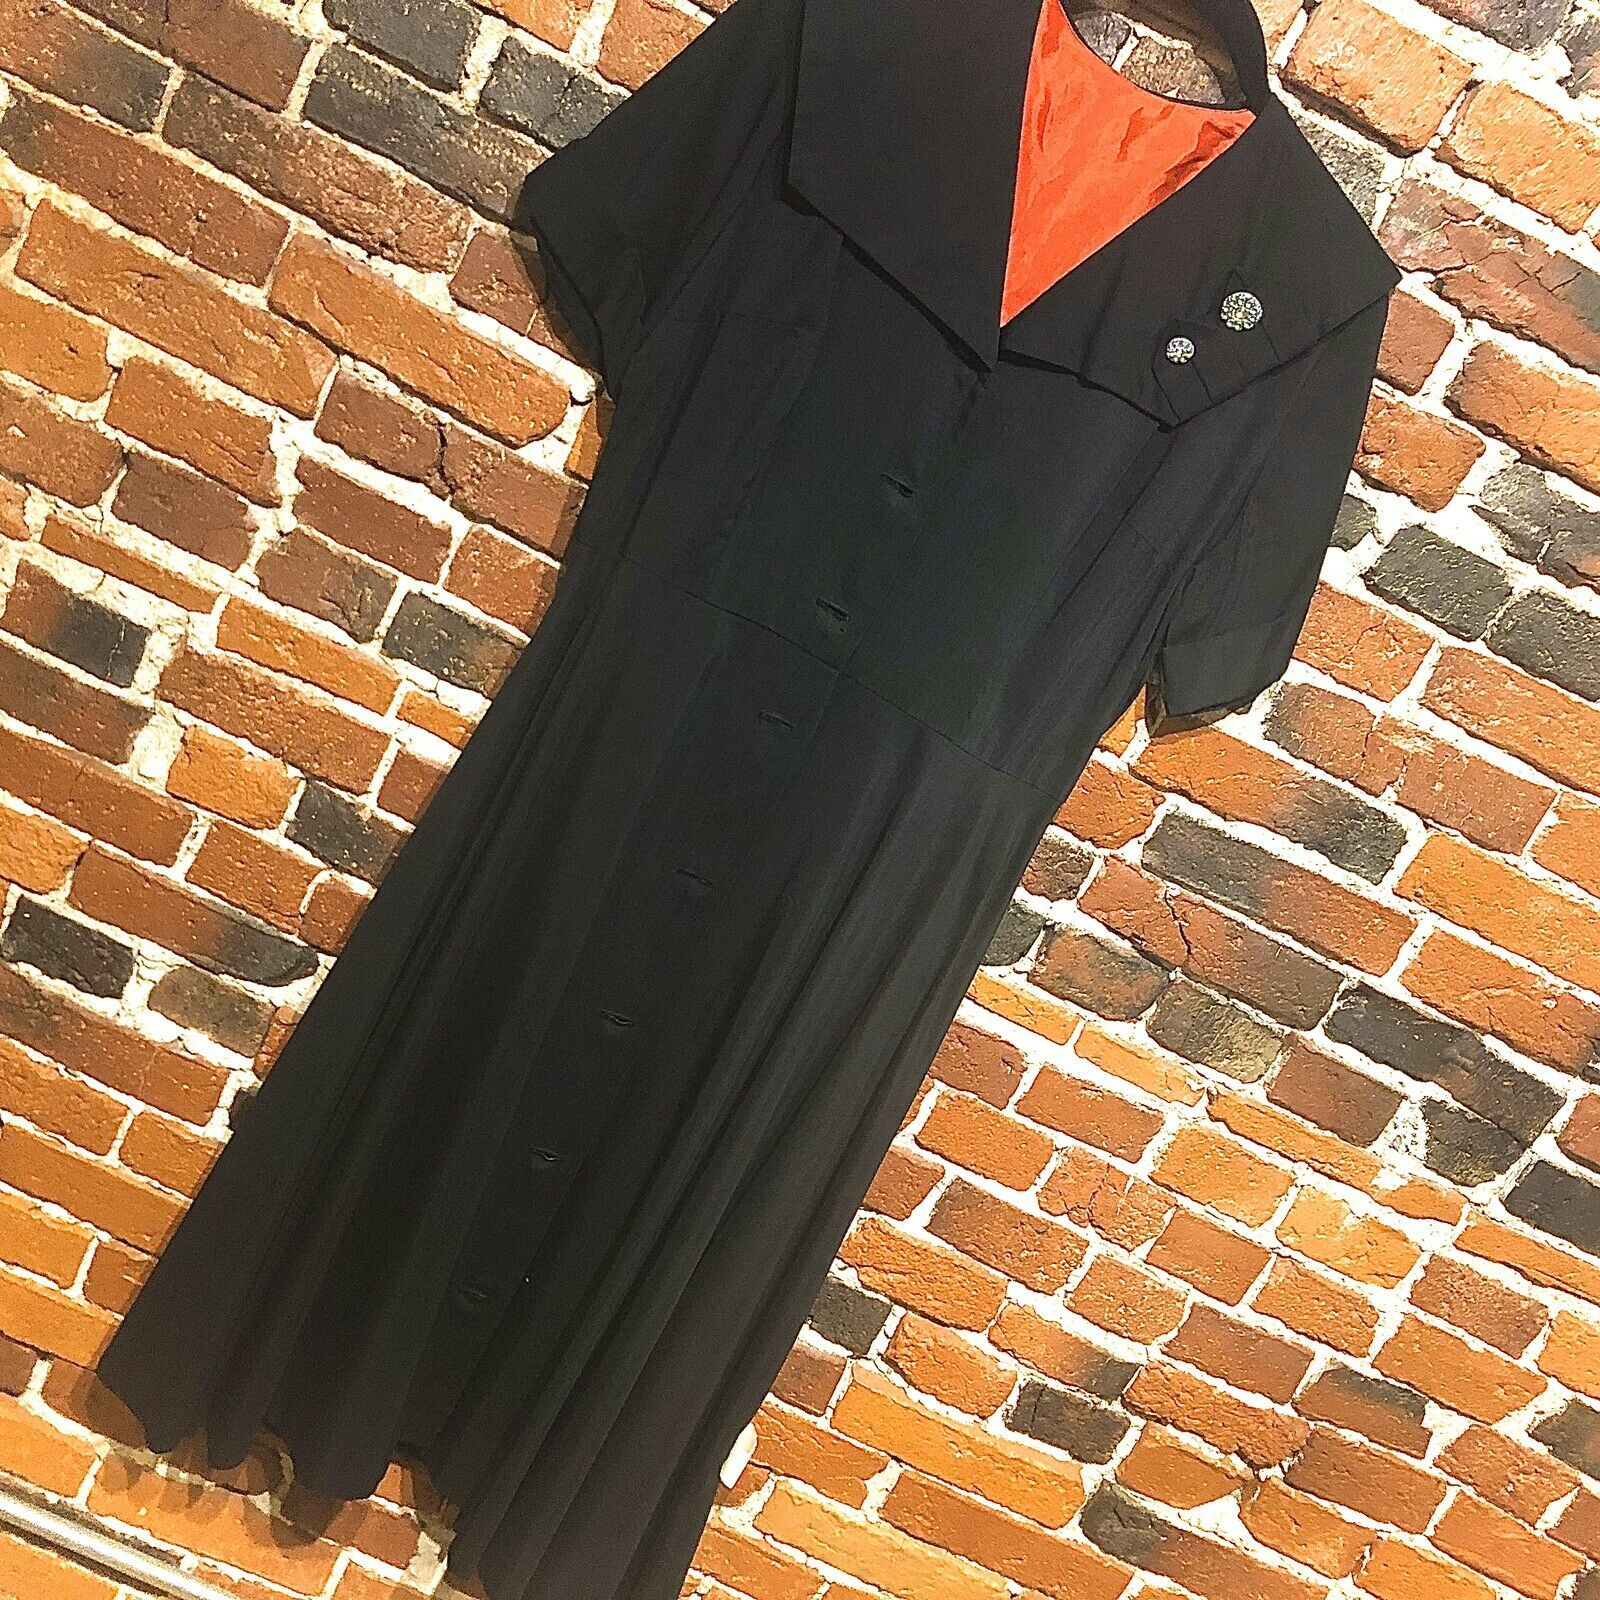 1940s Vintage Dress with Orange Lining and Rhinestone Buttons